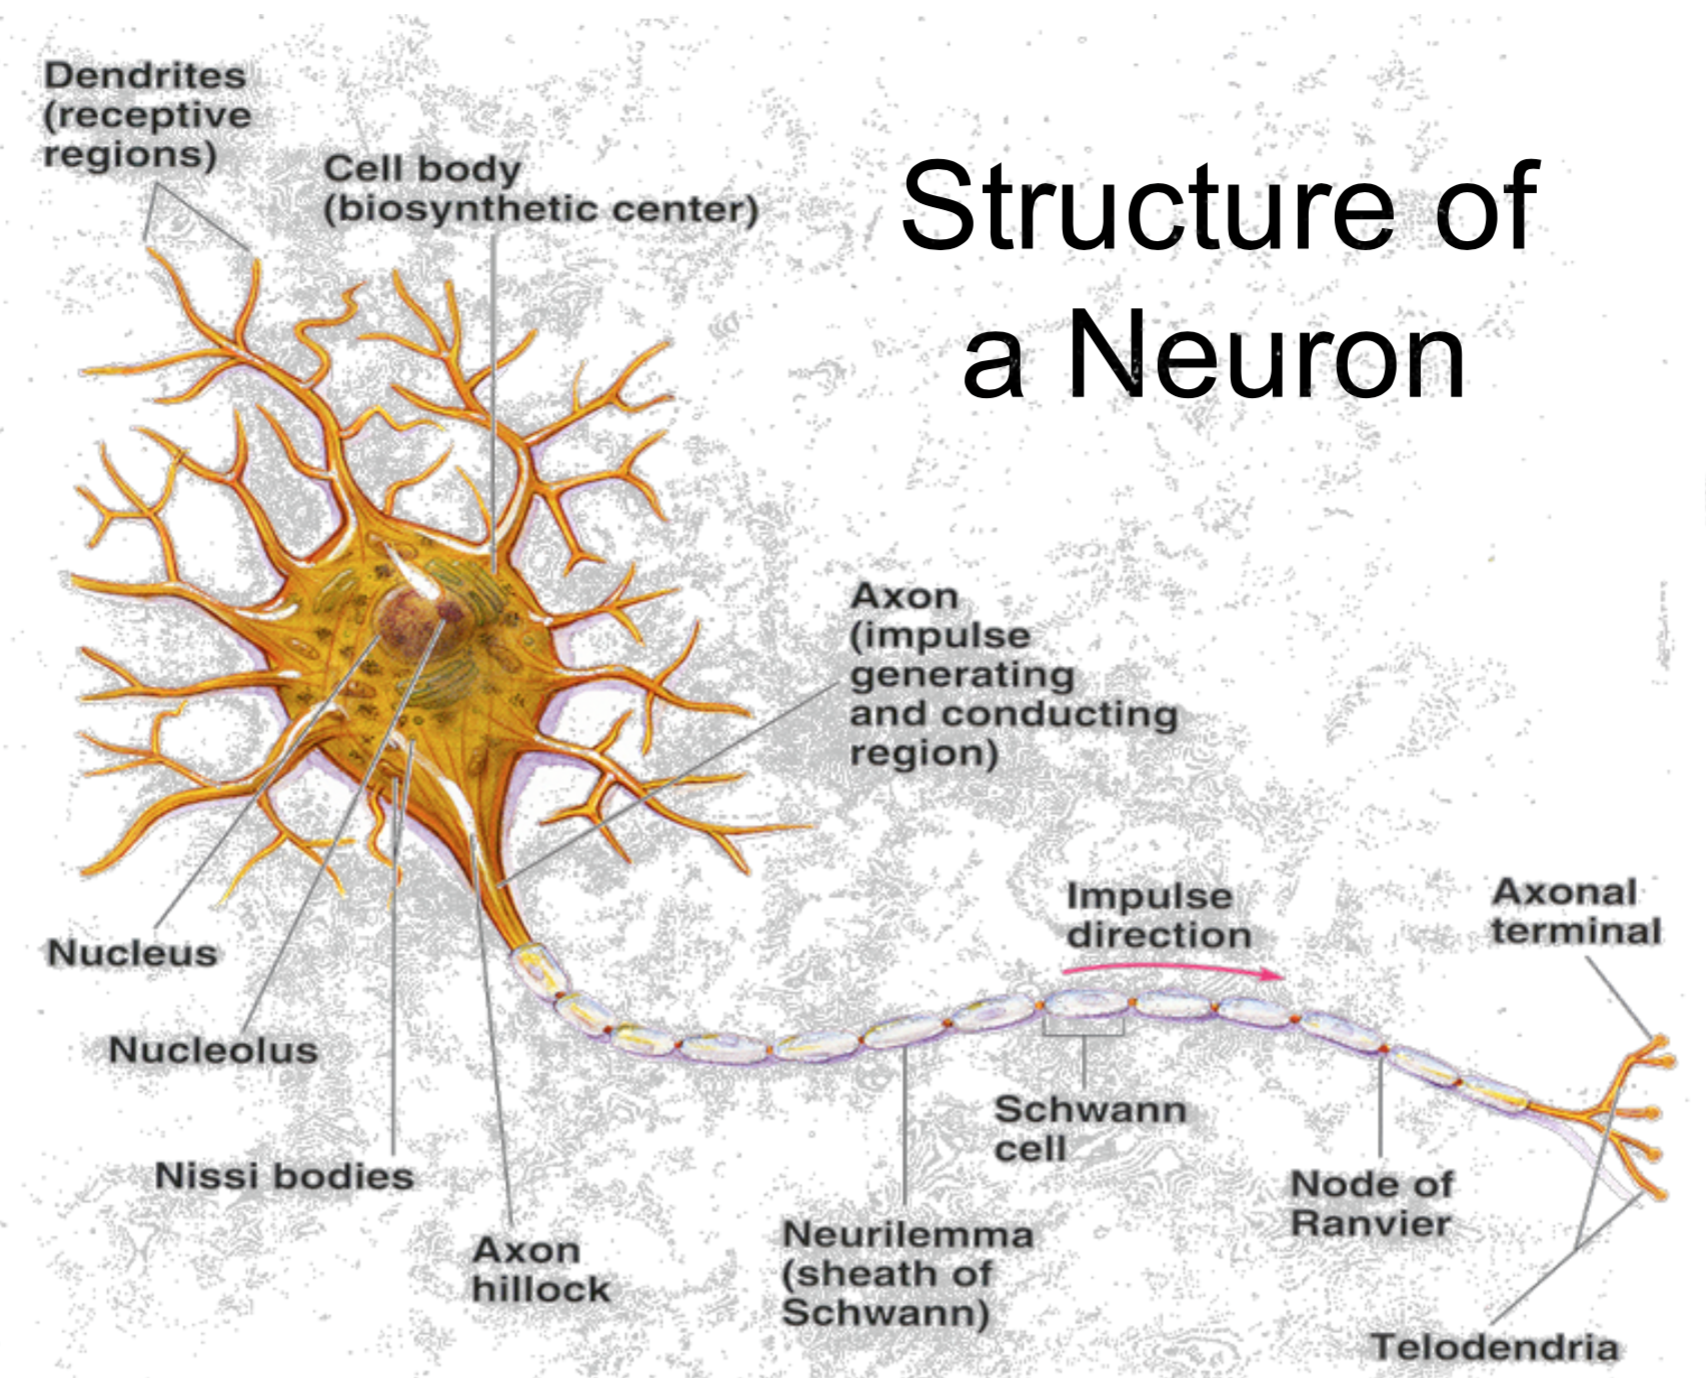 Ccf physiology l6 8 graded and action potentials physiology unit structure of a neuron diagram pooptronica Choice Image